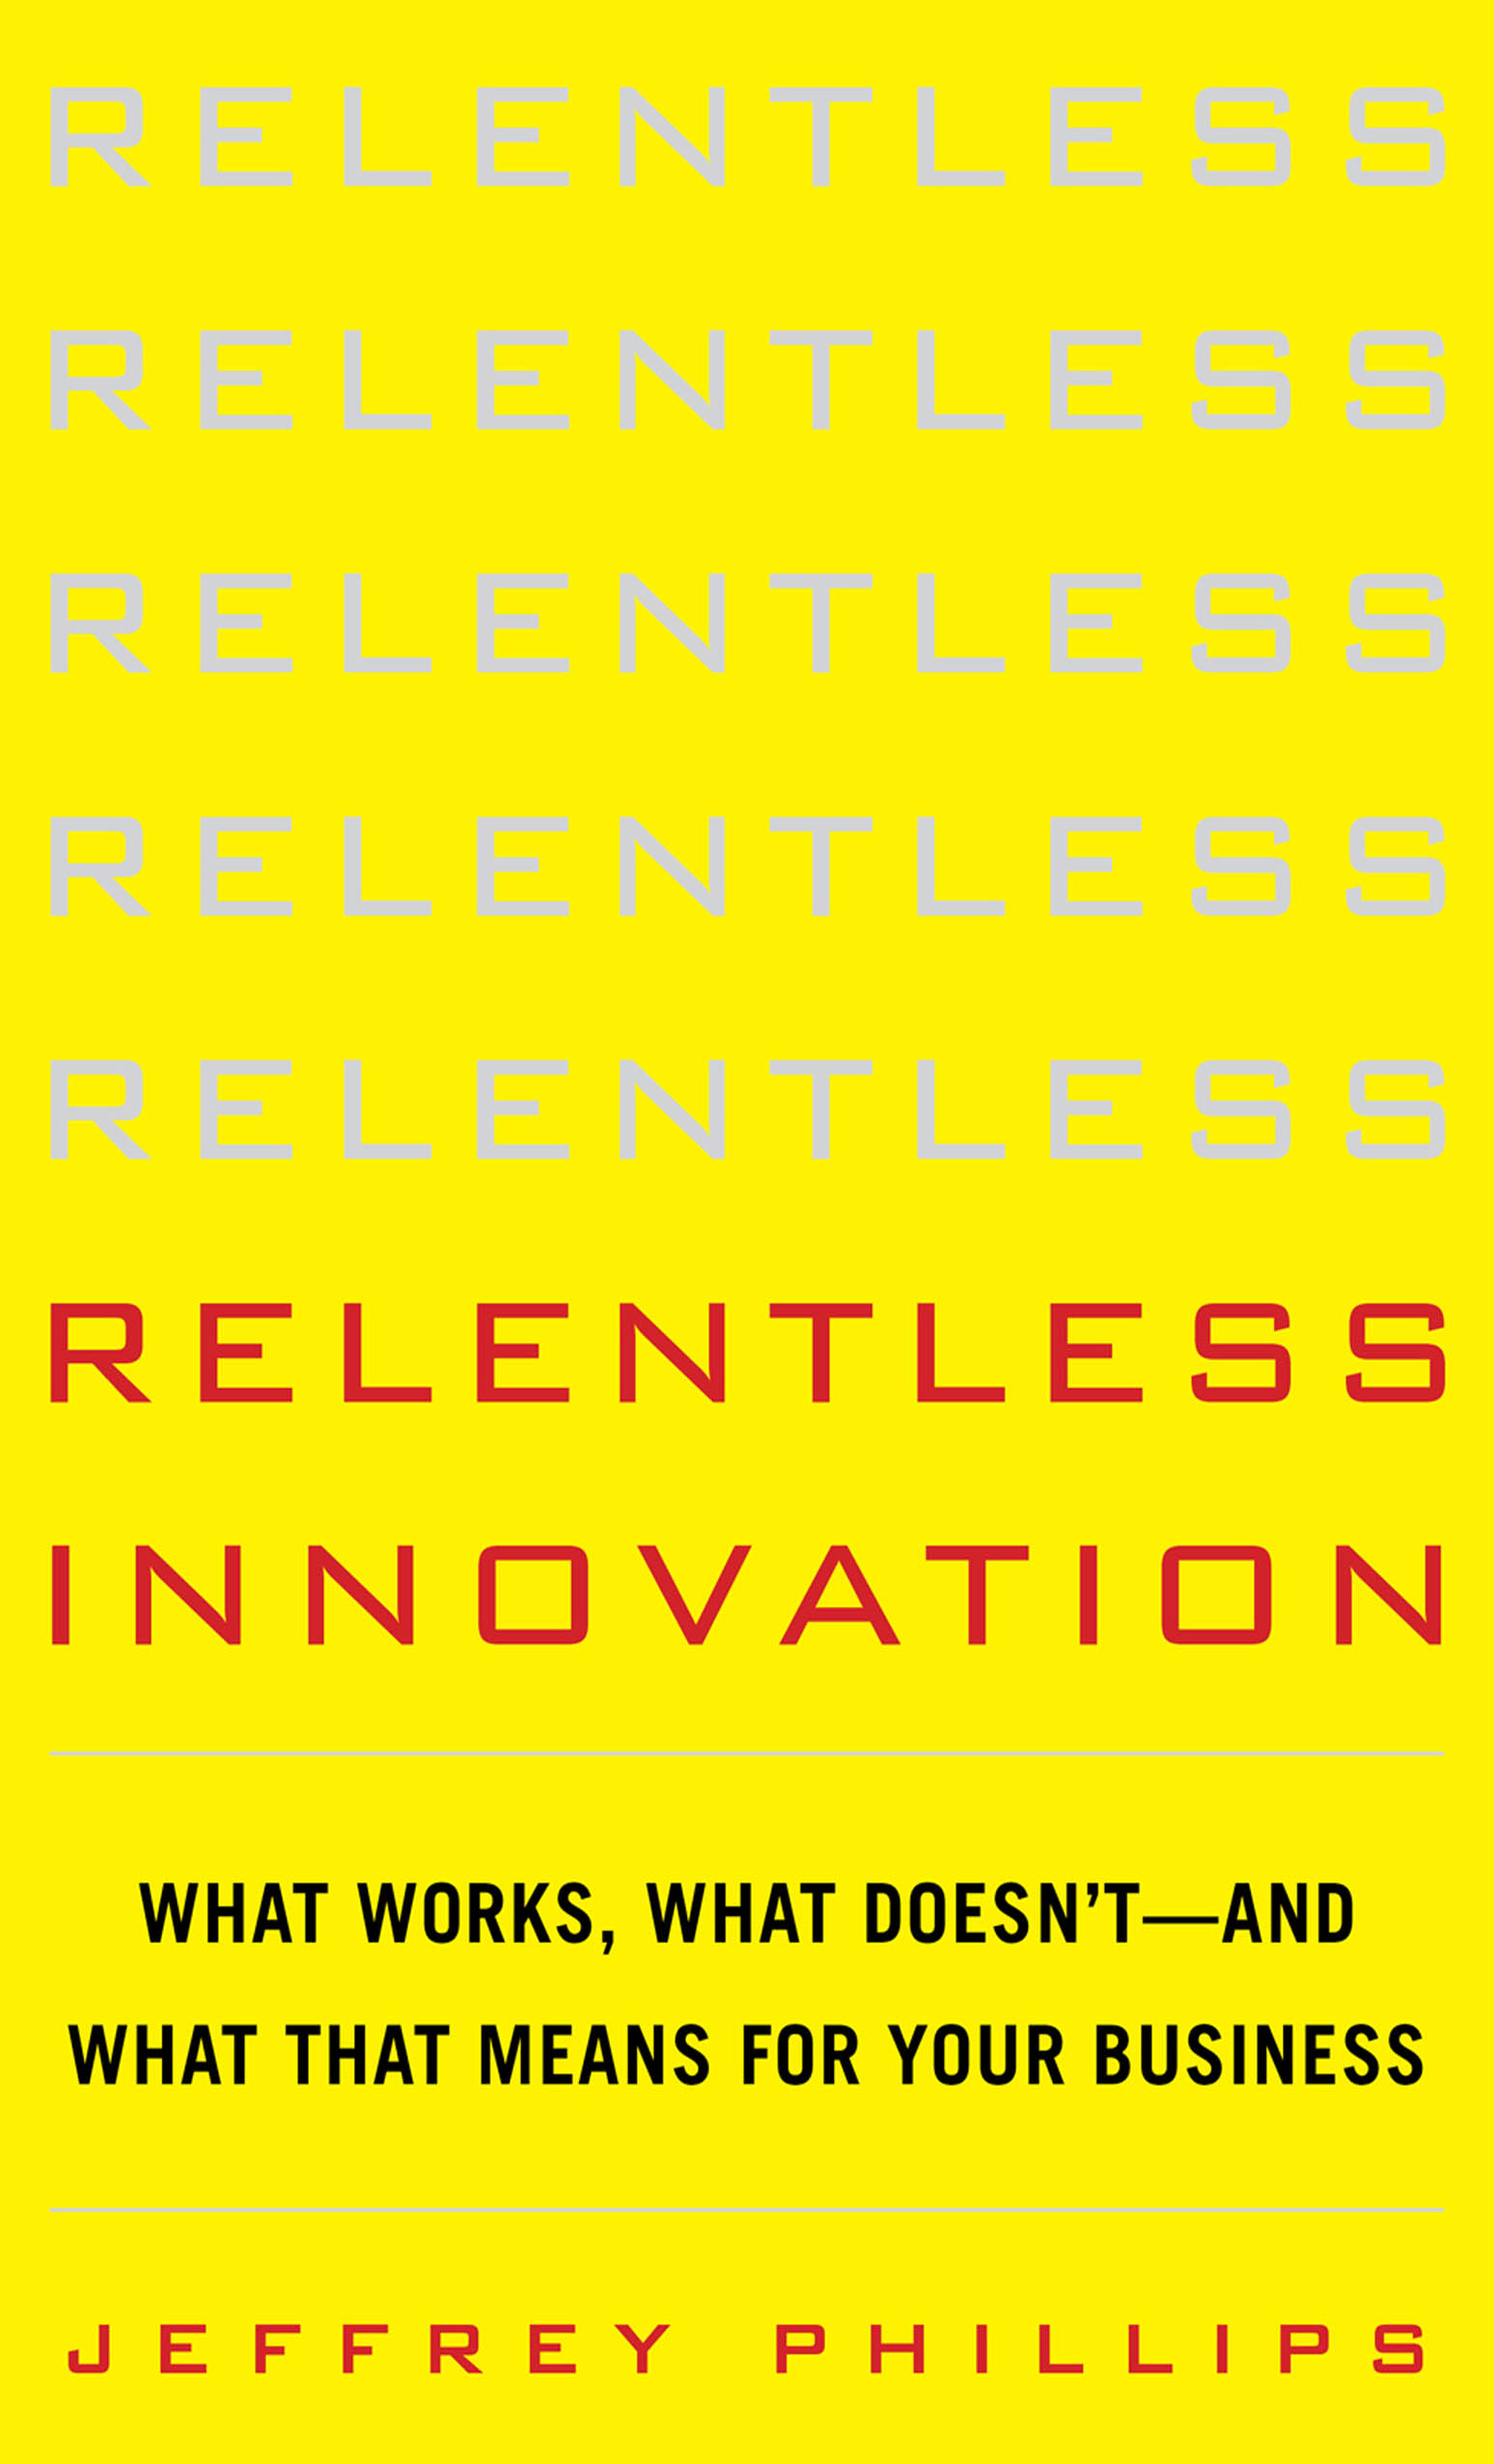 Download Ebook Relentless Innovation: What Works, What Doesn't--And What That Means For Your Business by Jeffrey Phillips Pdf